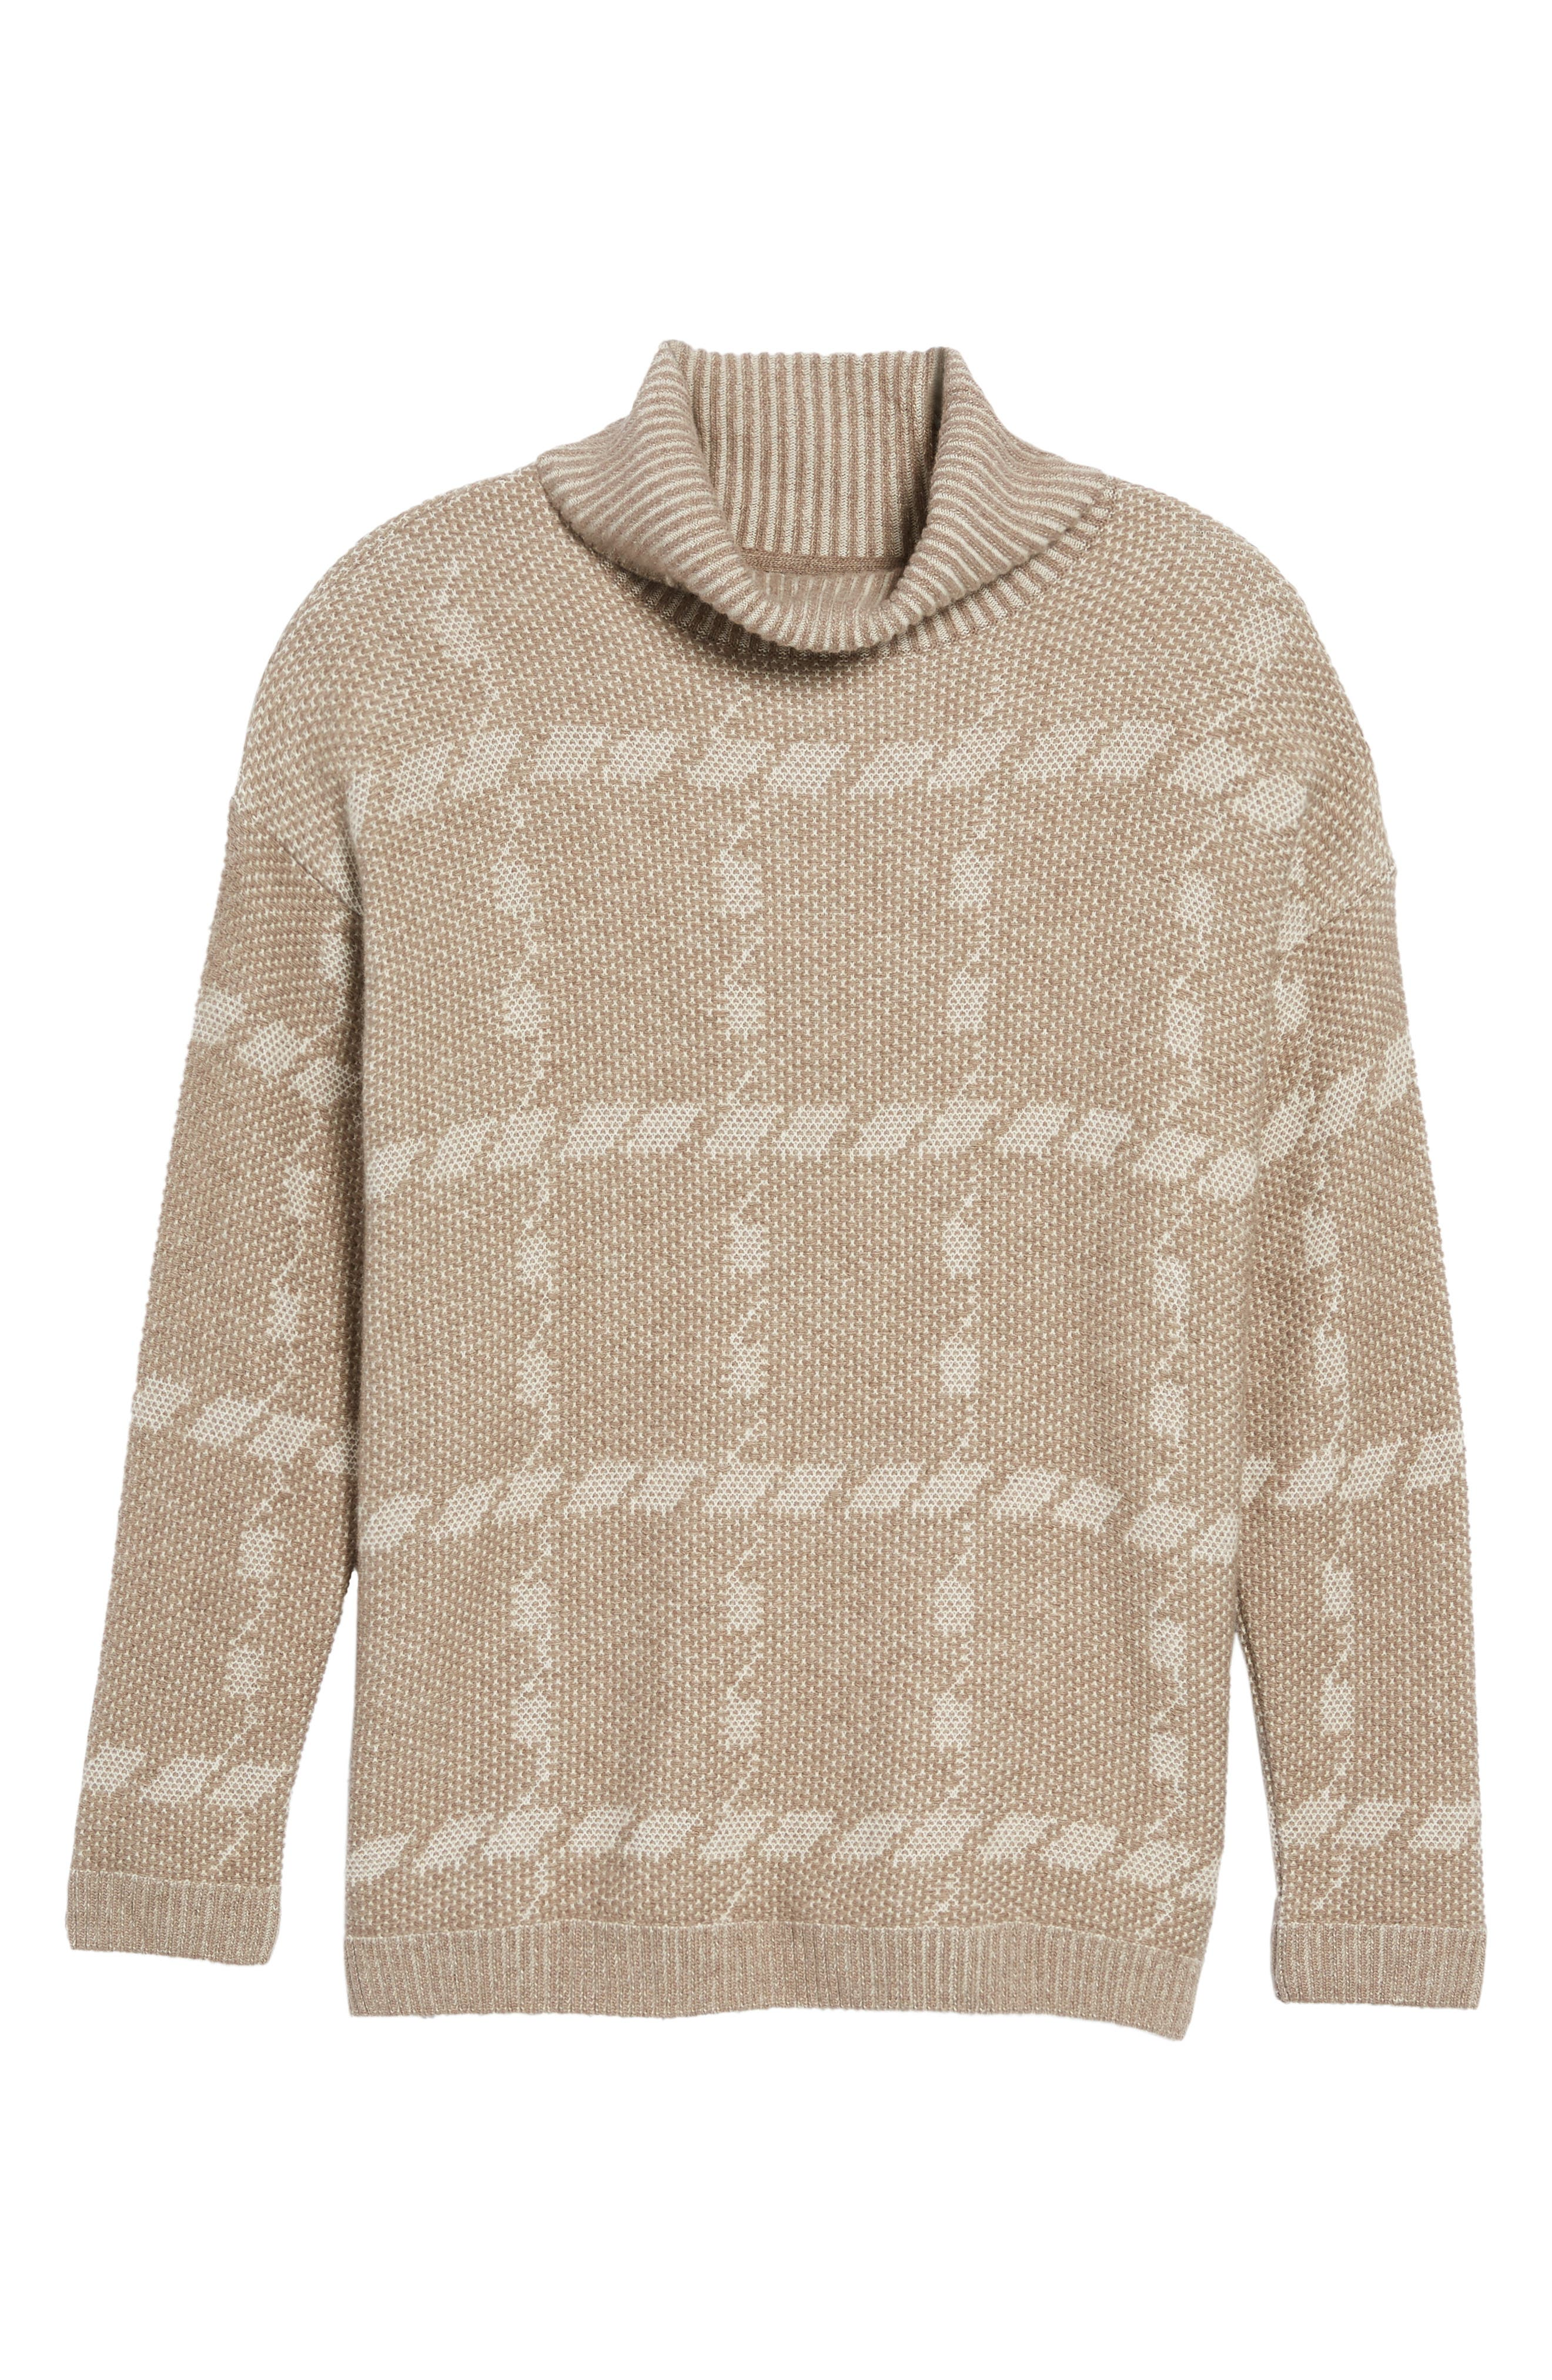 Glen Knit Merino Wool Blend Turtleneck Sweater,                             Alternate thumbnail 6, color,                             Taupe